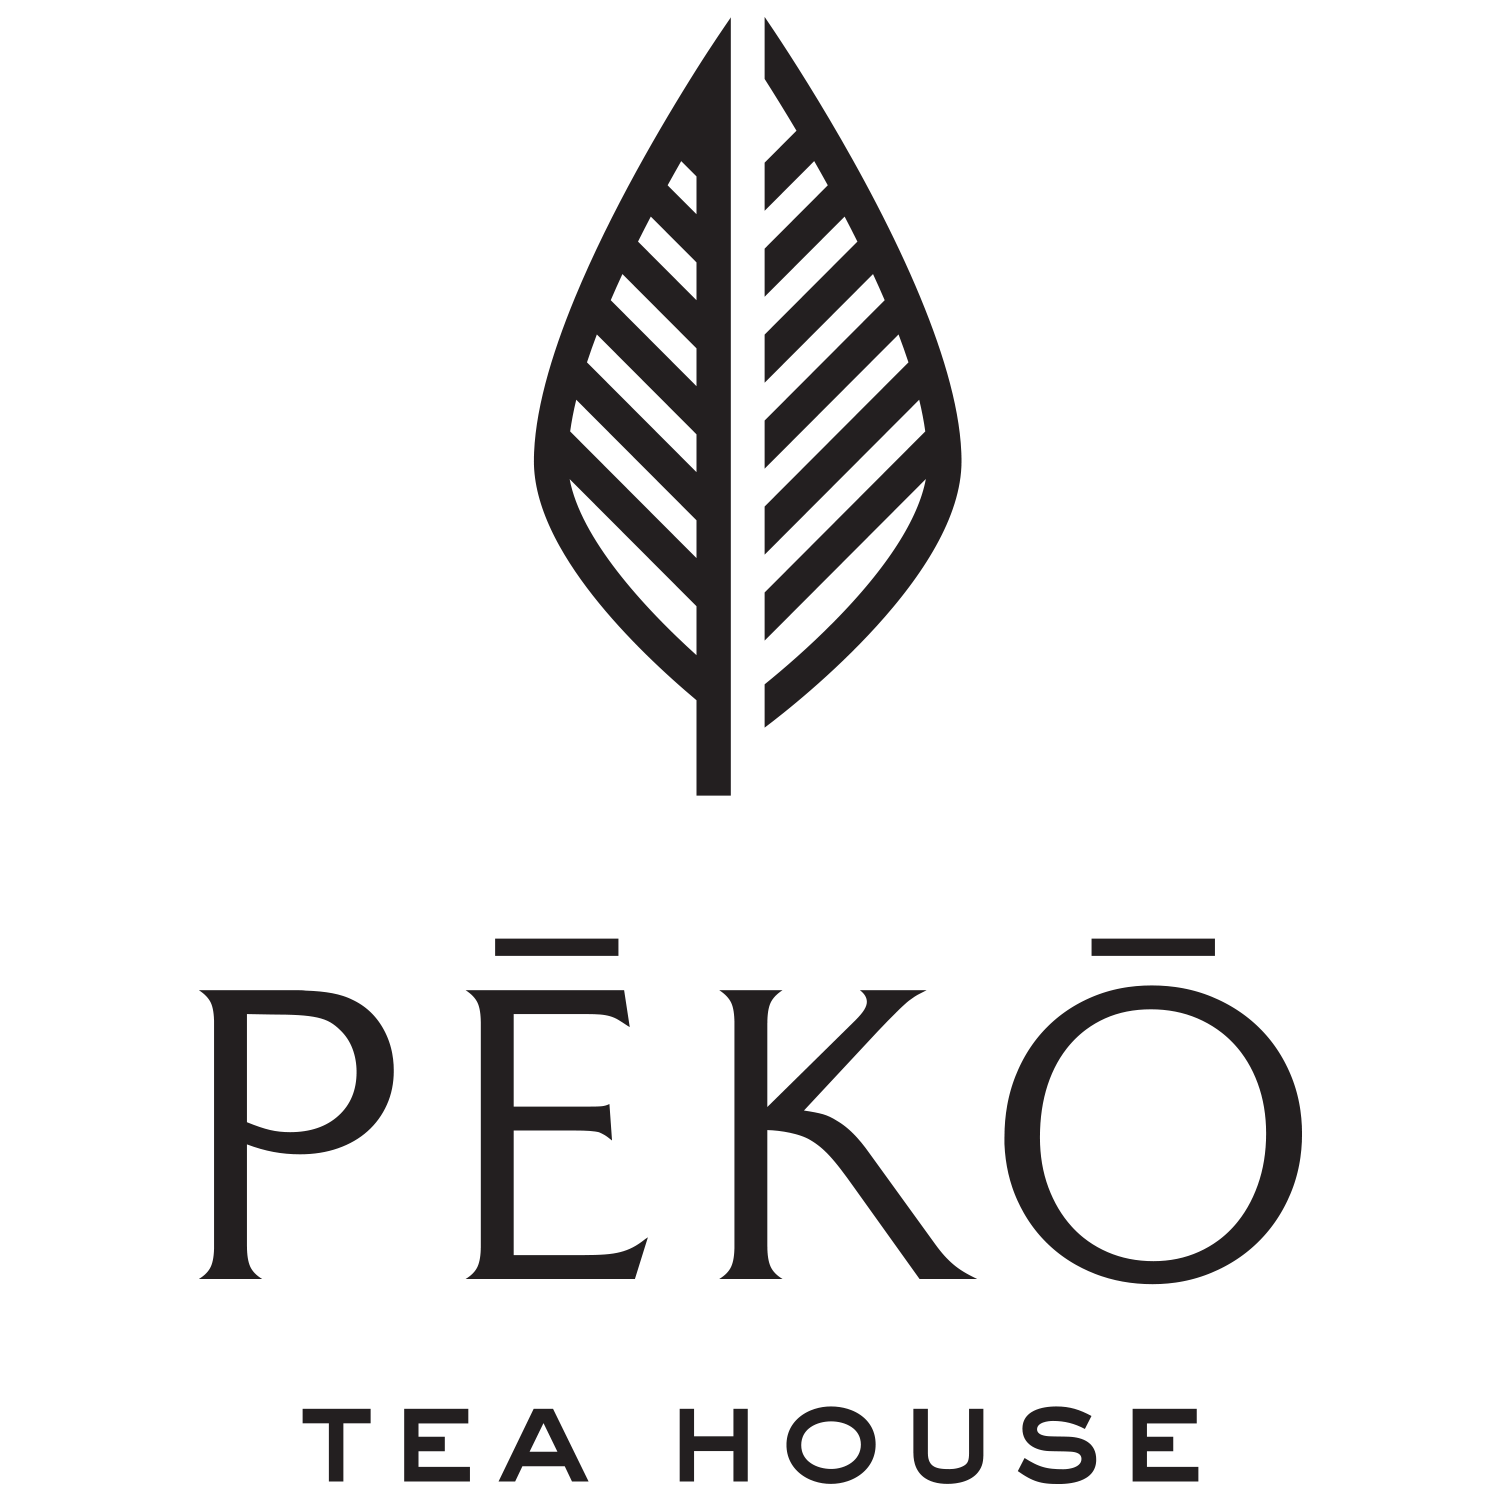 PEKO Tea House